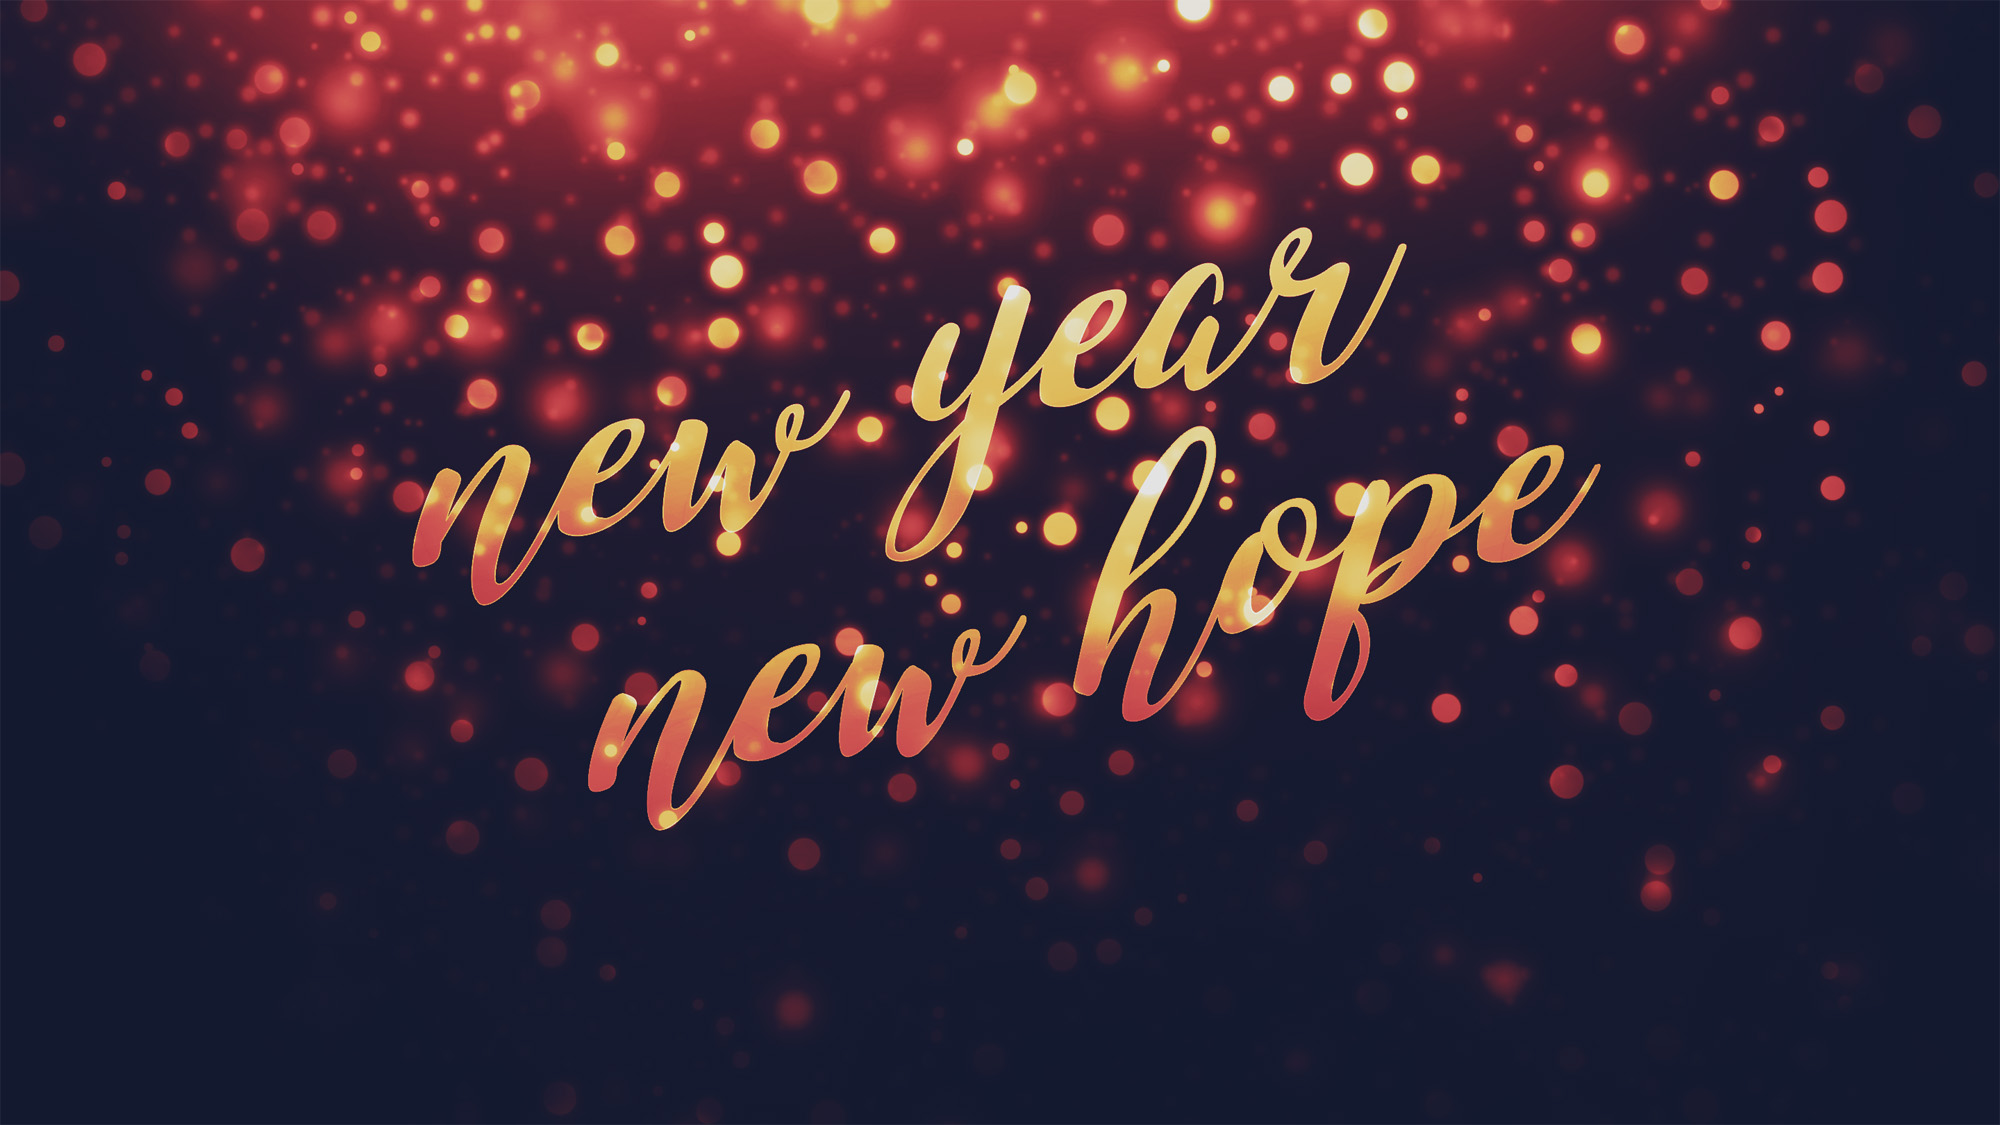 new_year_new_hope-title-2-Wide 16x9.jpg